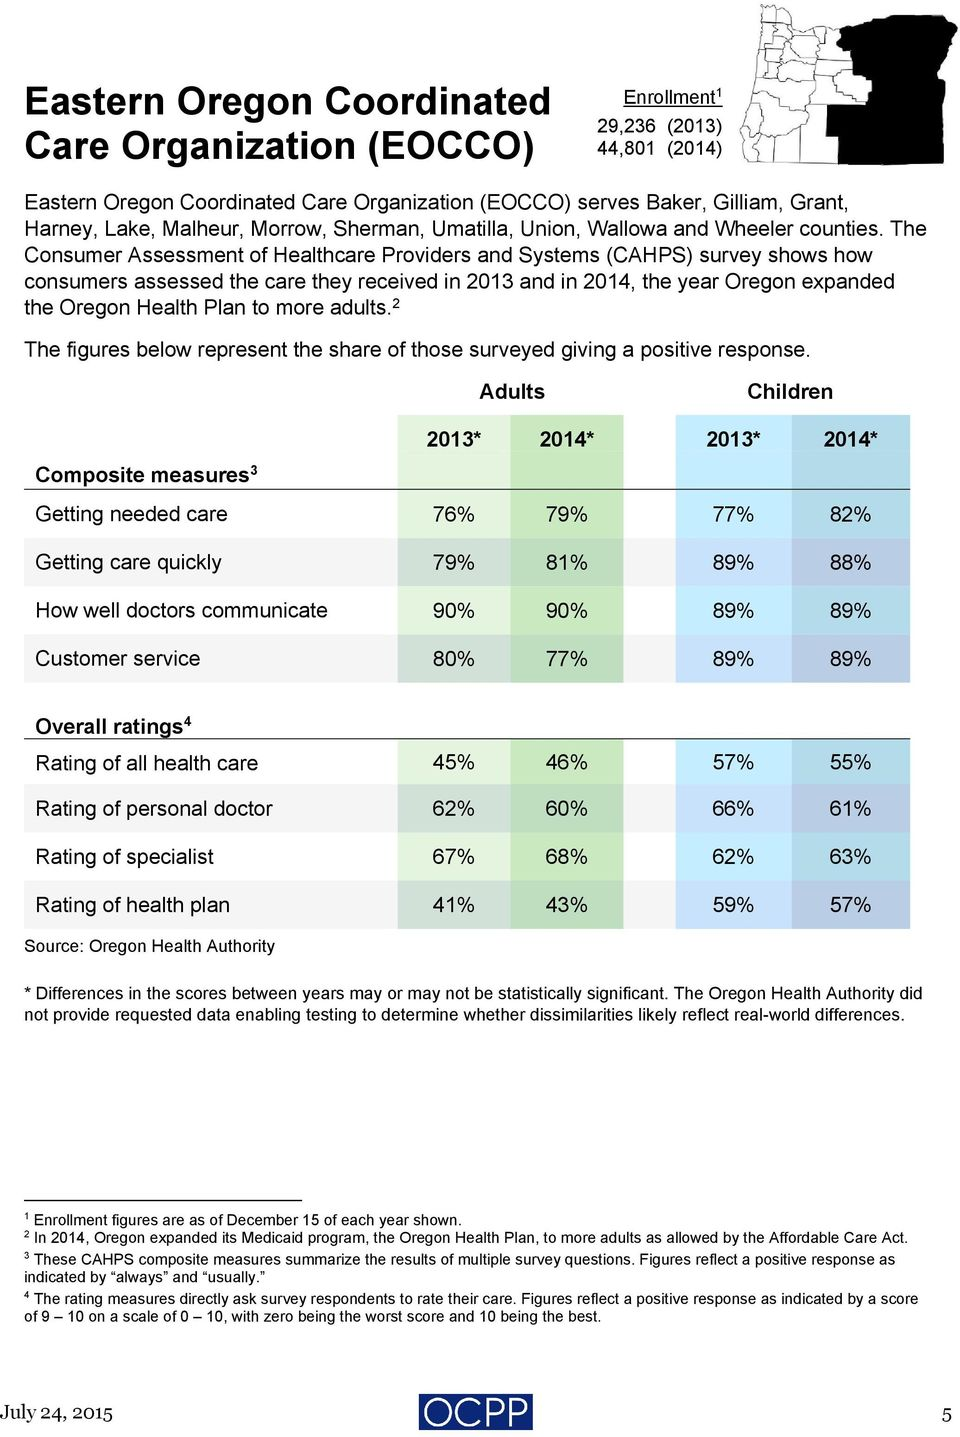 The Consumer Assessment of Healthcare Providers and Systems (CAHPS) survey shows how consumers assessed the care they received in 0 and in 0, the year Oregon expanded the Oregon Health Plan to more